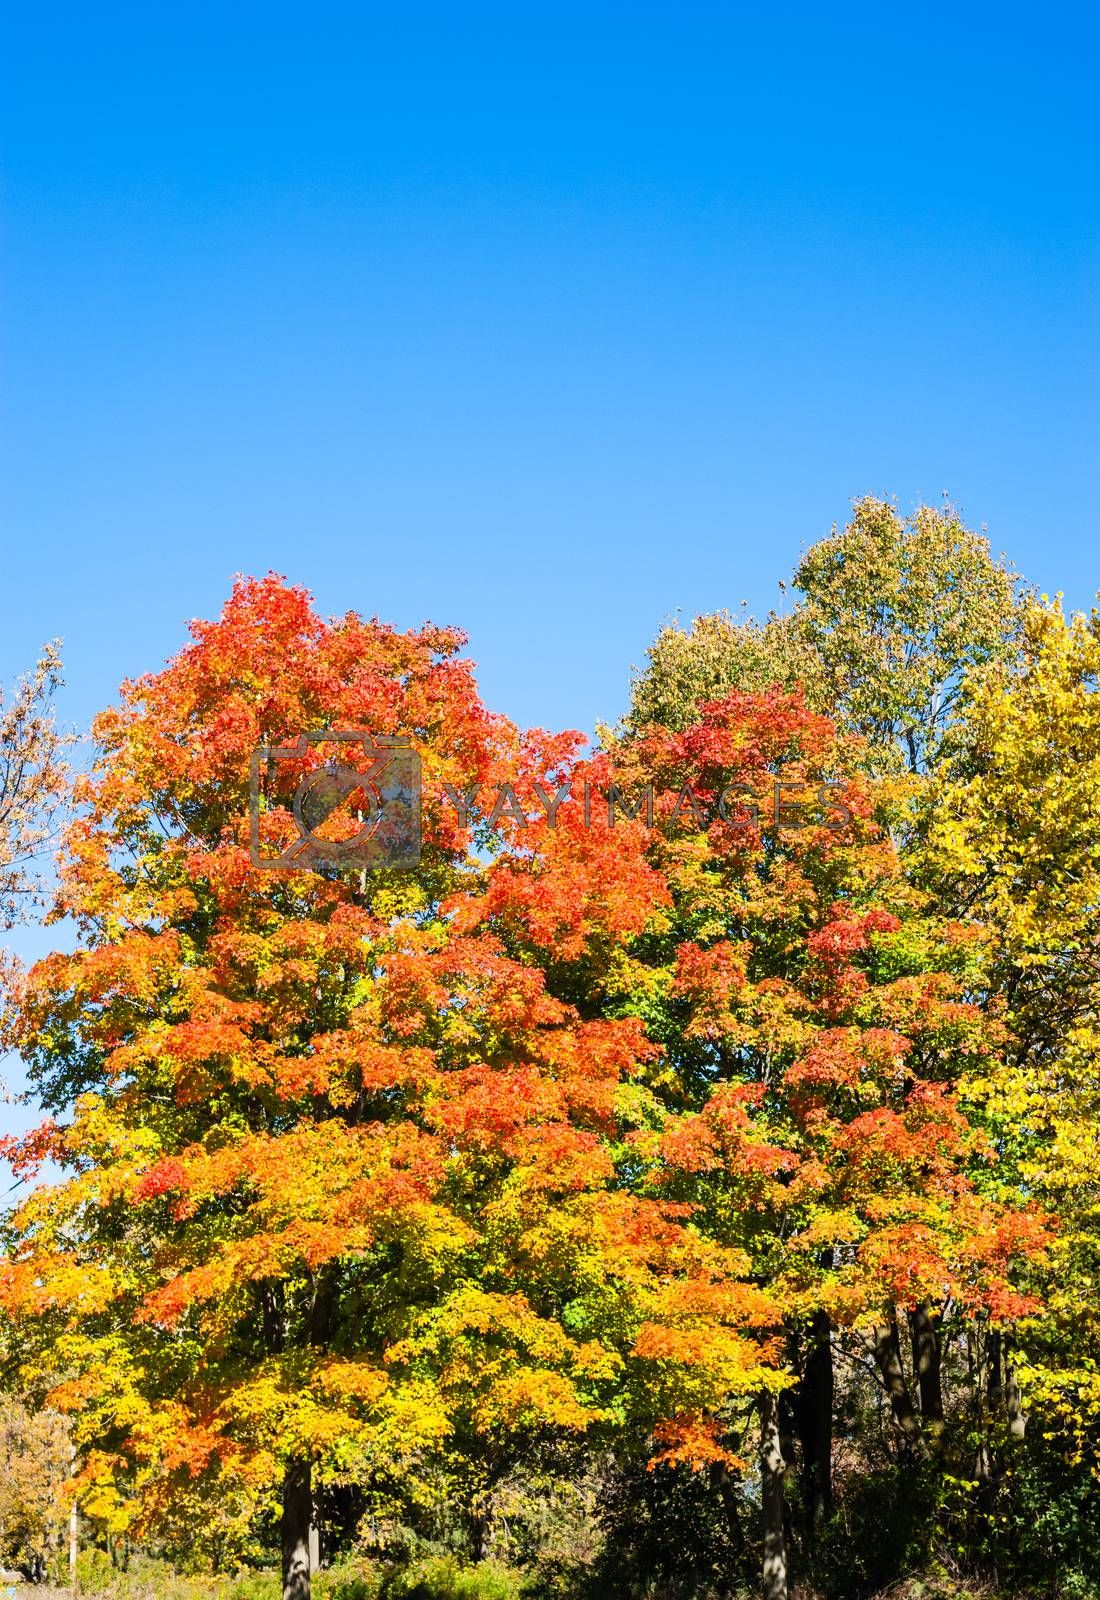 Autumn trees turning orange under blue sky by ArchonCodex